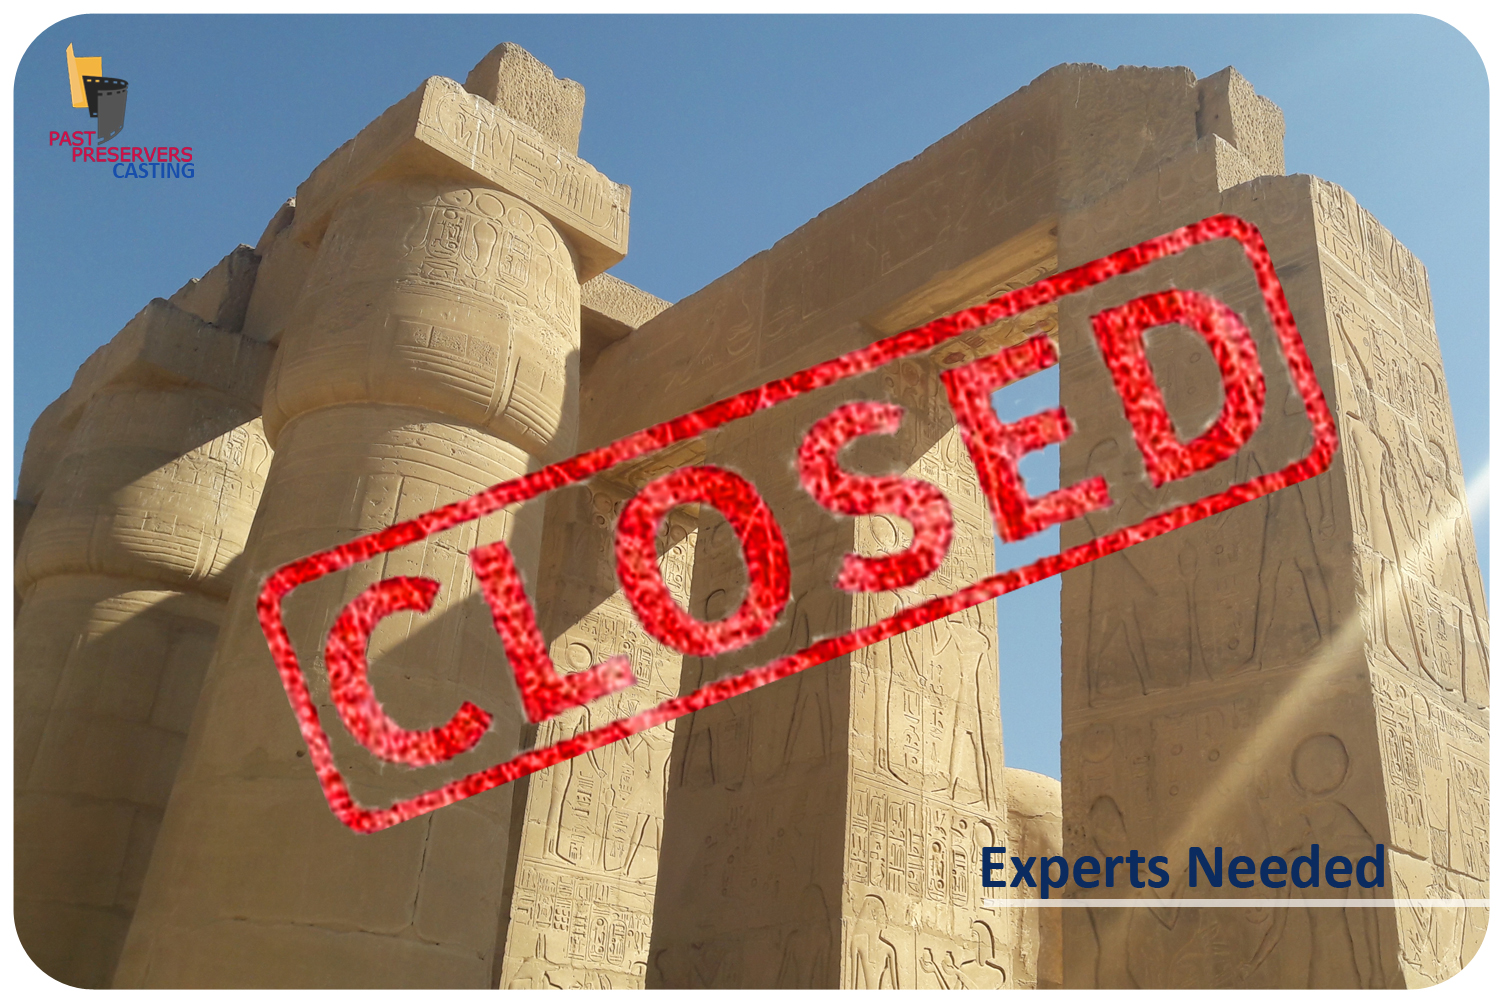 Egyptologists Needed for a one-day shoot in Luxor!